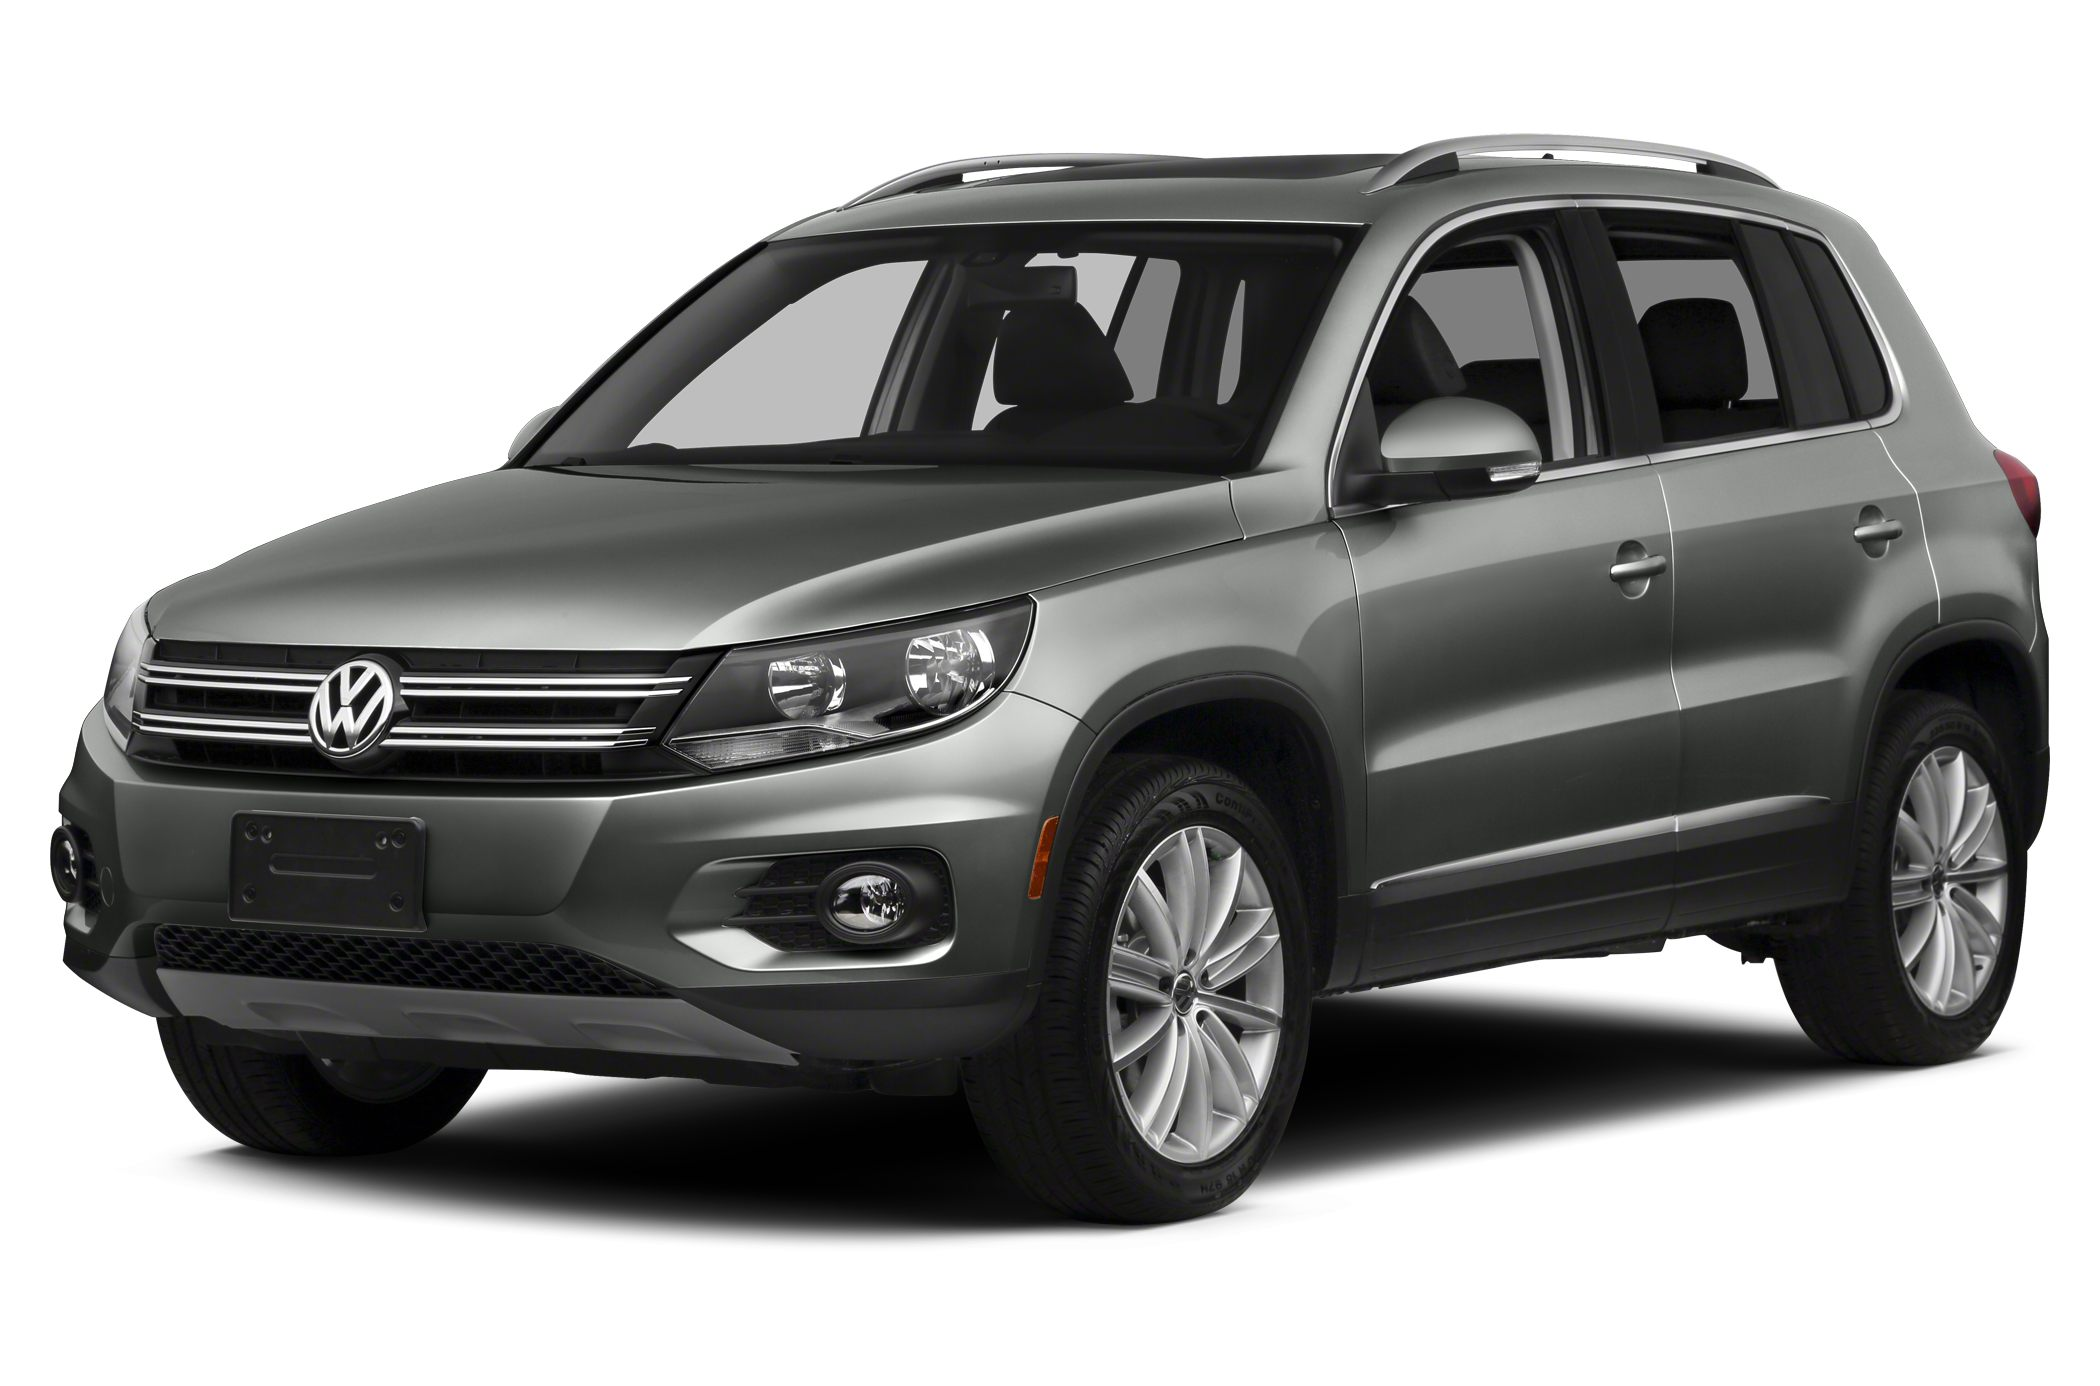 2013 Volkswagen Tiguan S This vehicle really shows it was cared for by the previous owner You sho